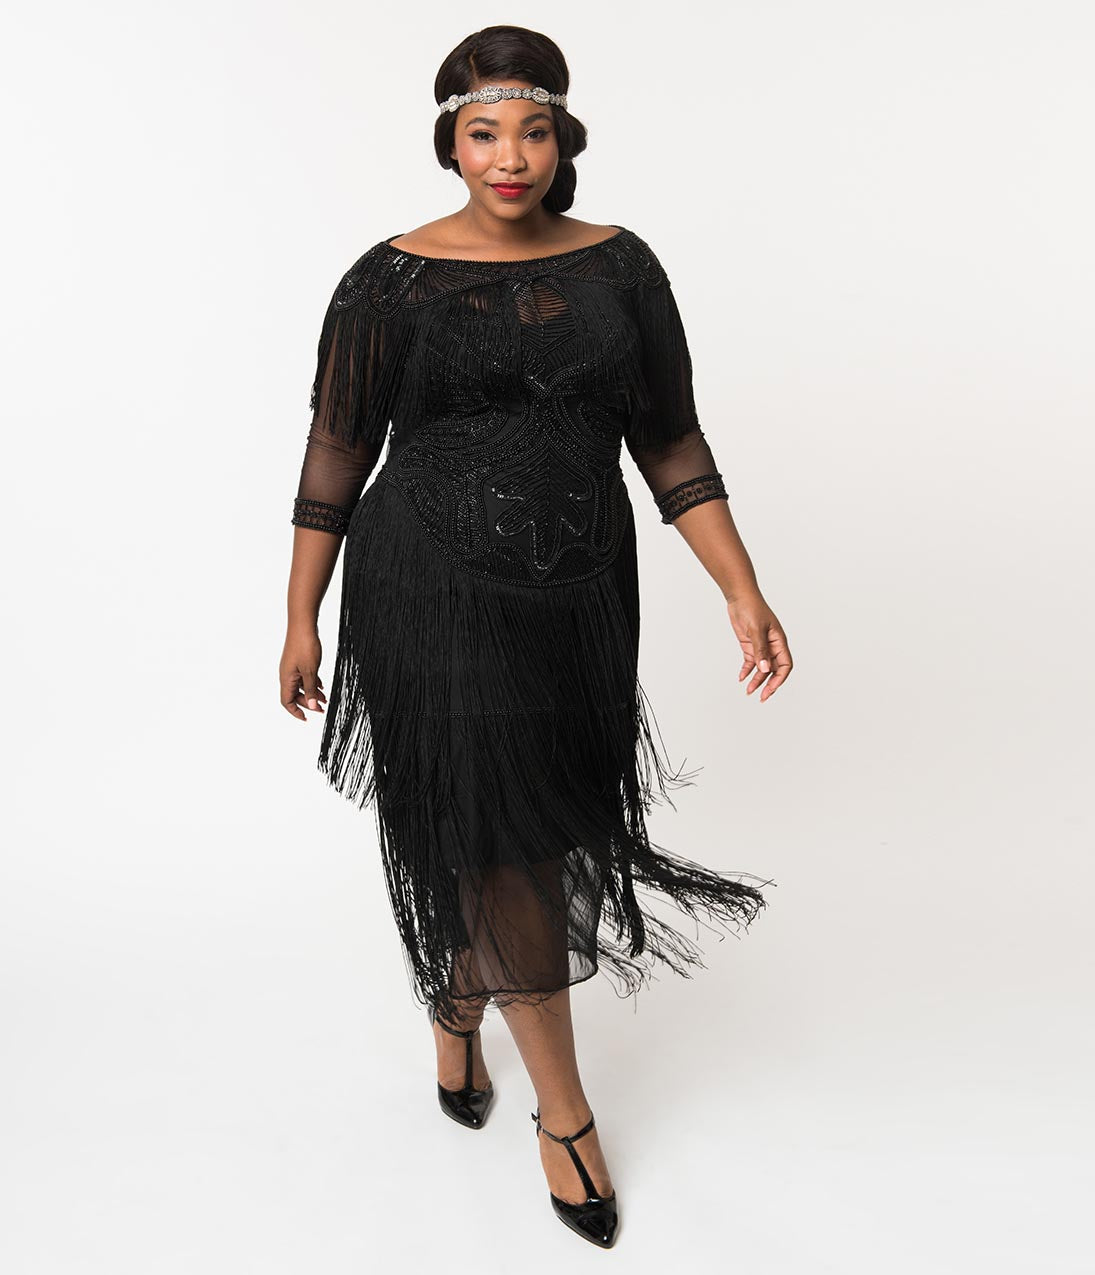 1920s Plus Size Flapper Dresses, Gatsby Dresses, Flapper Costumes Plus Size 1920S Style Black Beaded Mesh Glam Fringe Flapper Maxi Gown $186.00 AT vintagedancer.com